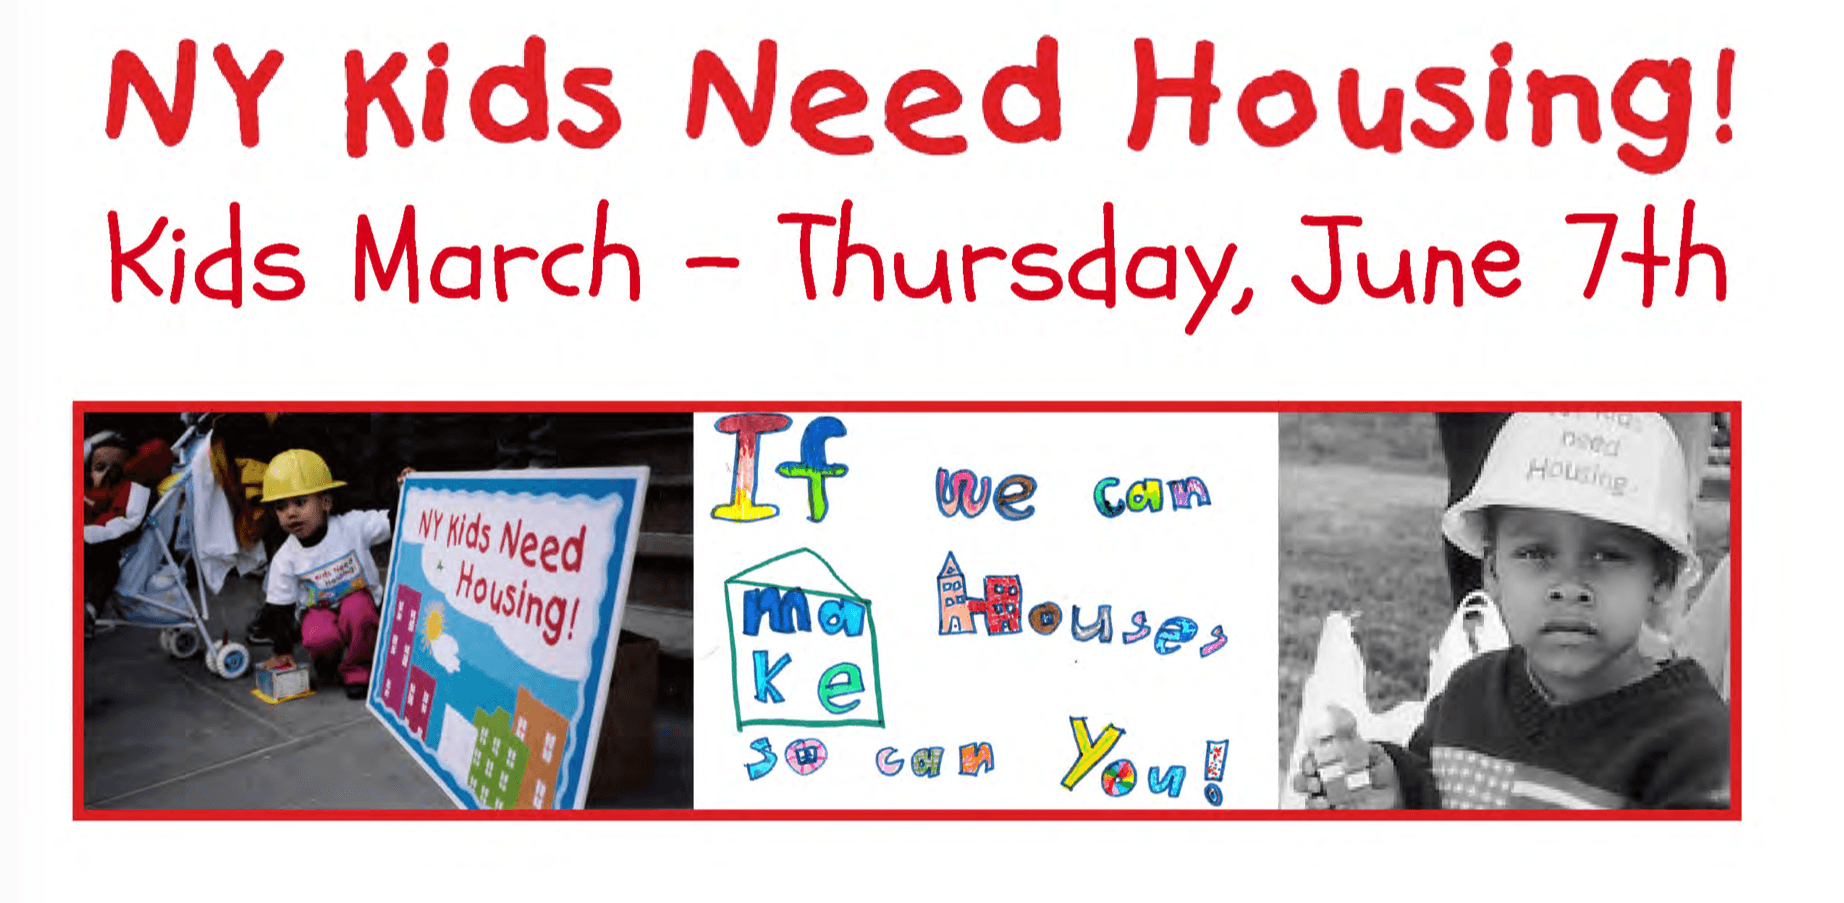 Flyer of NY Kids Need Housing March on June 7th